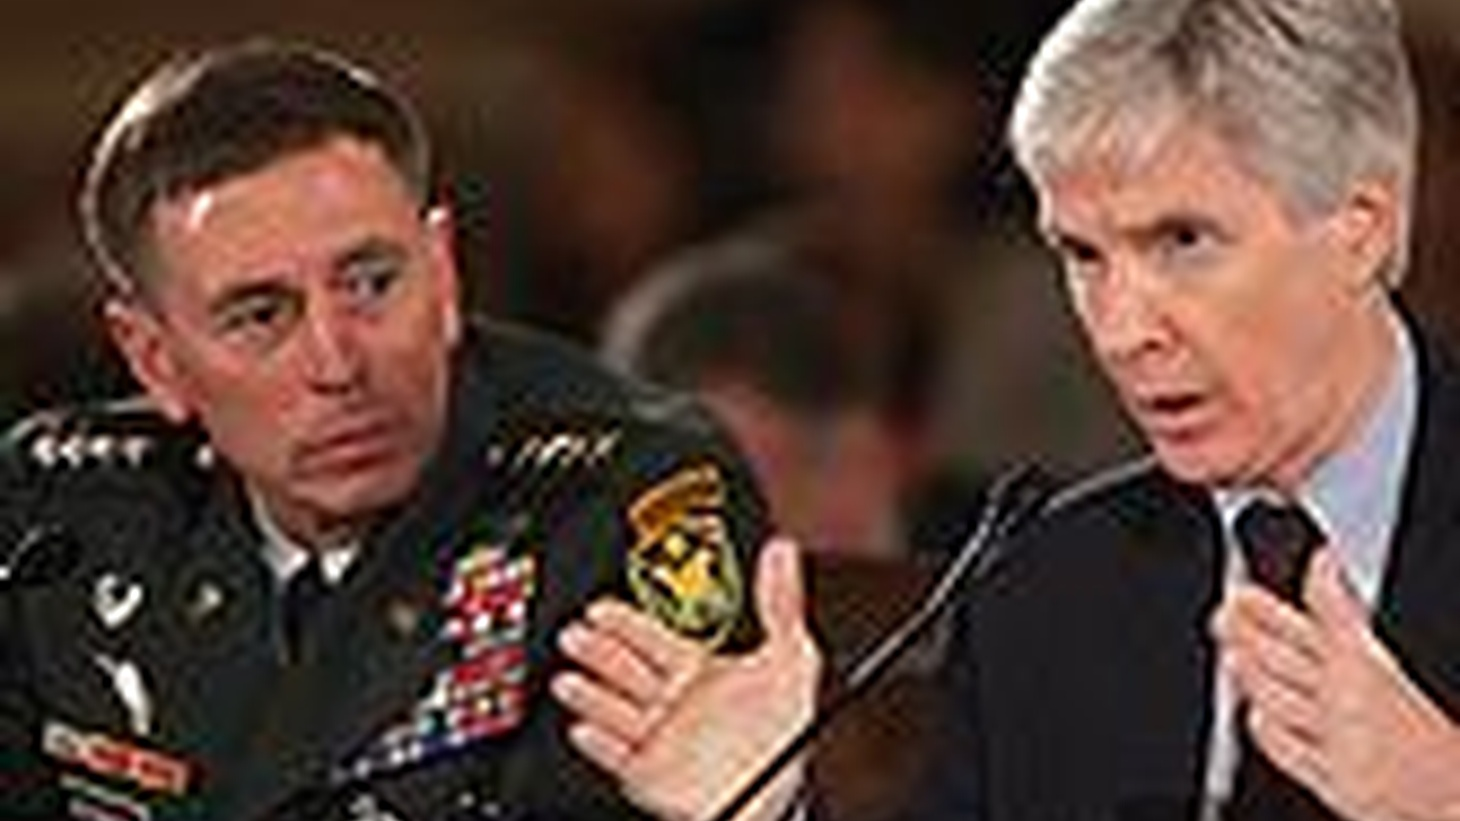 The Senate Foreign Relations Committee and Senate Armed Services Committee will each hold hearings with US Armed Forces Commander in Iraq